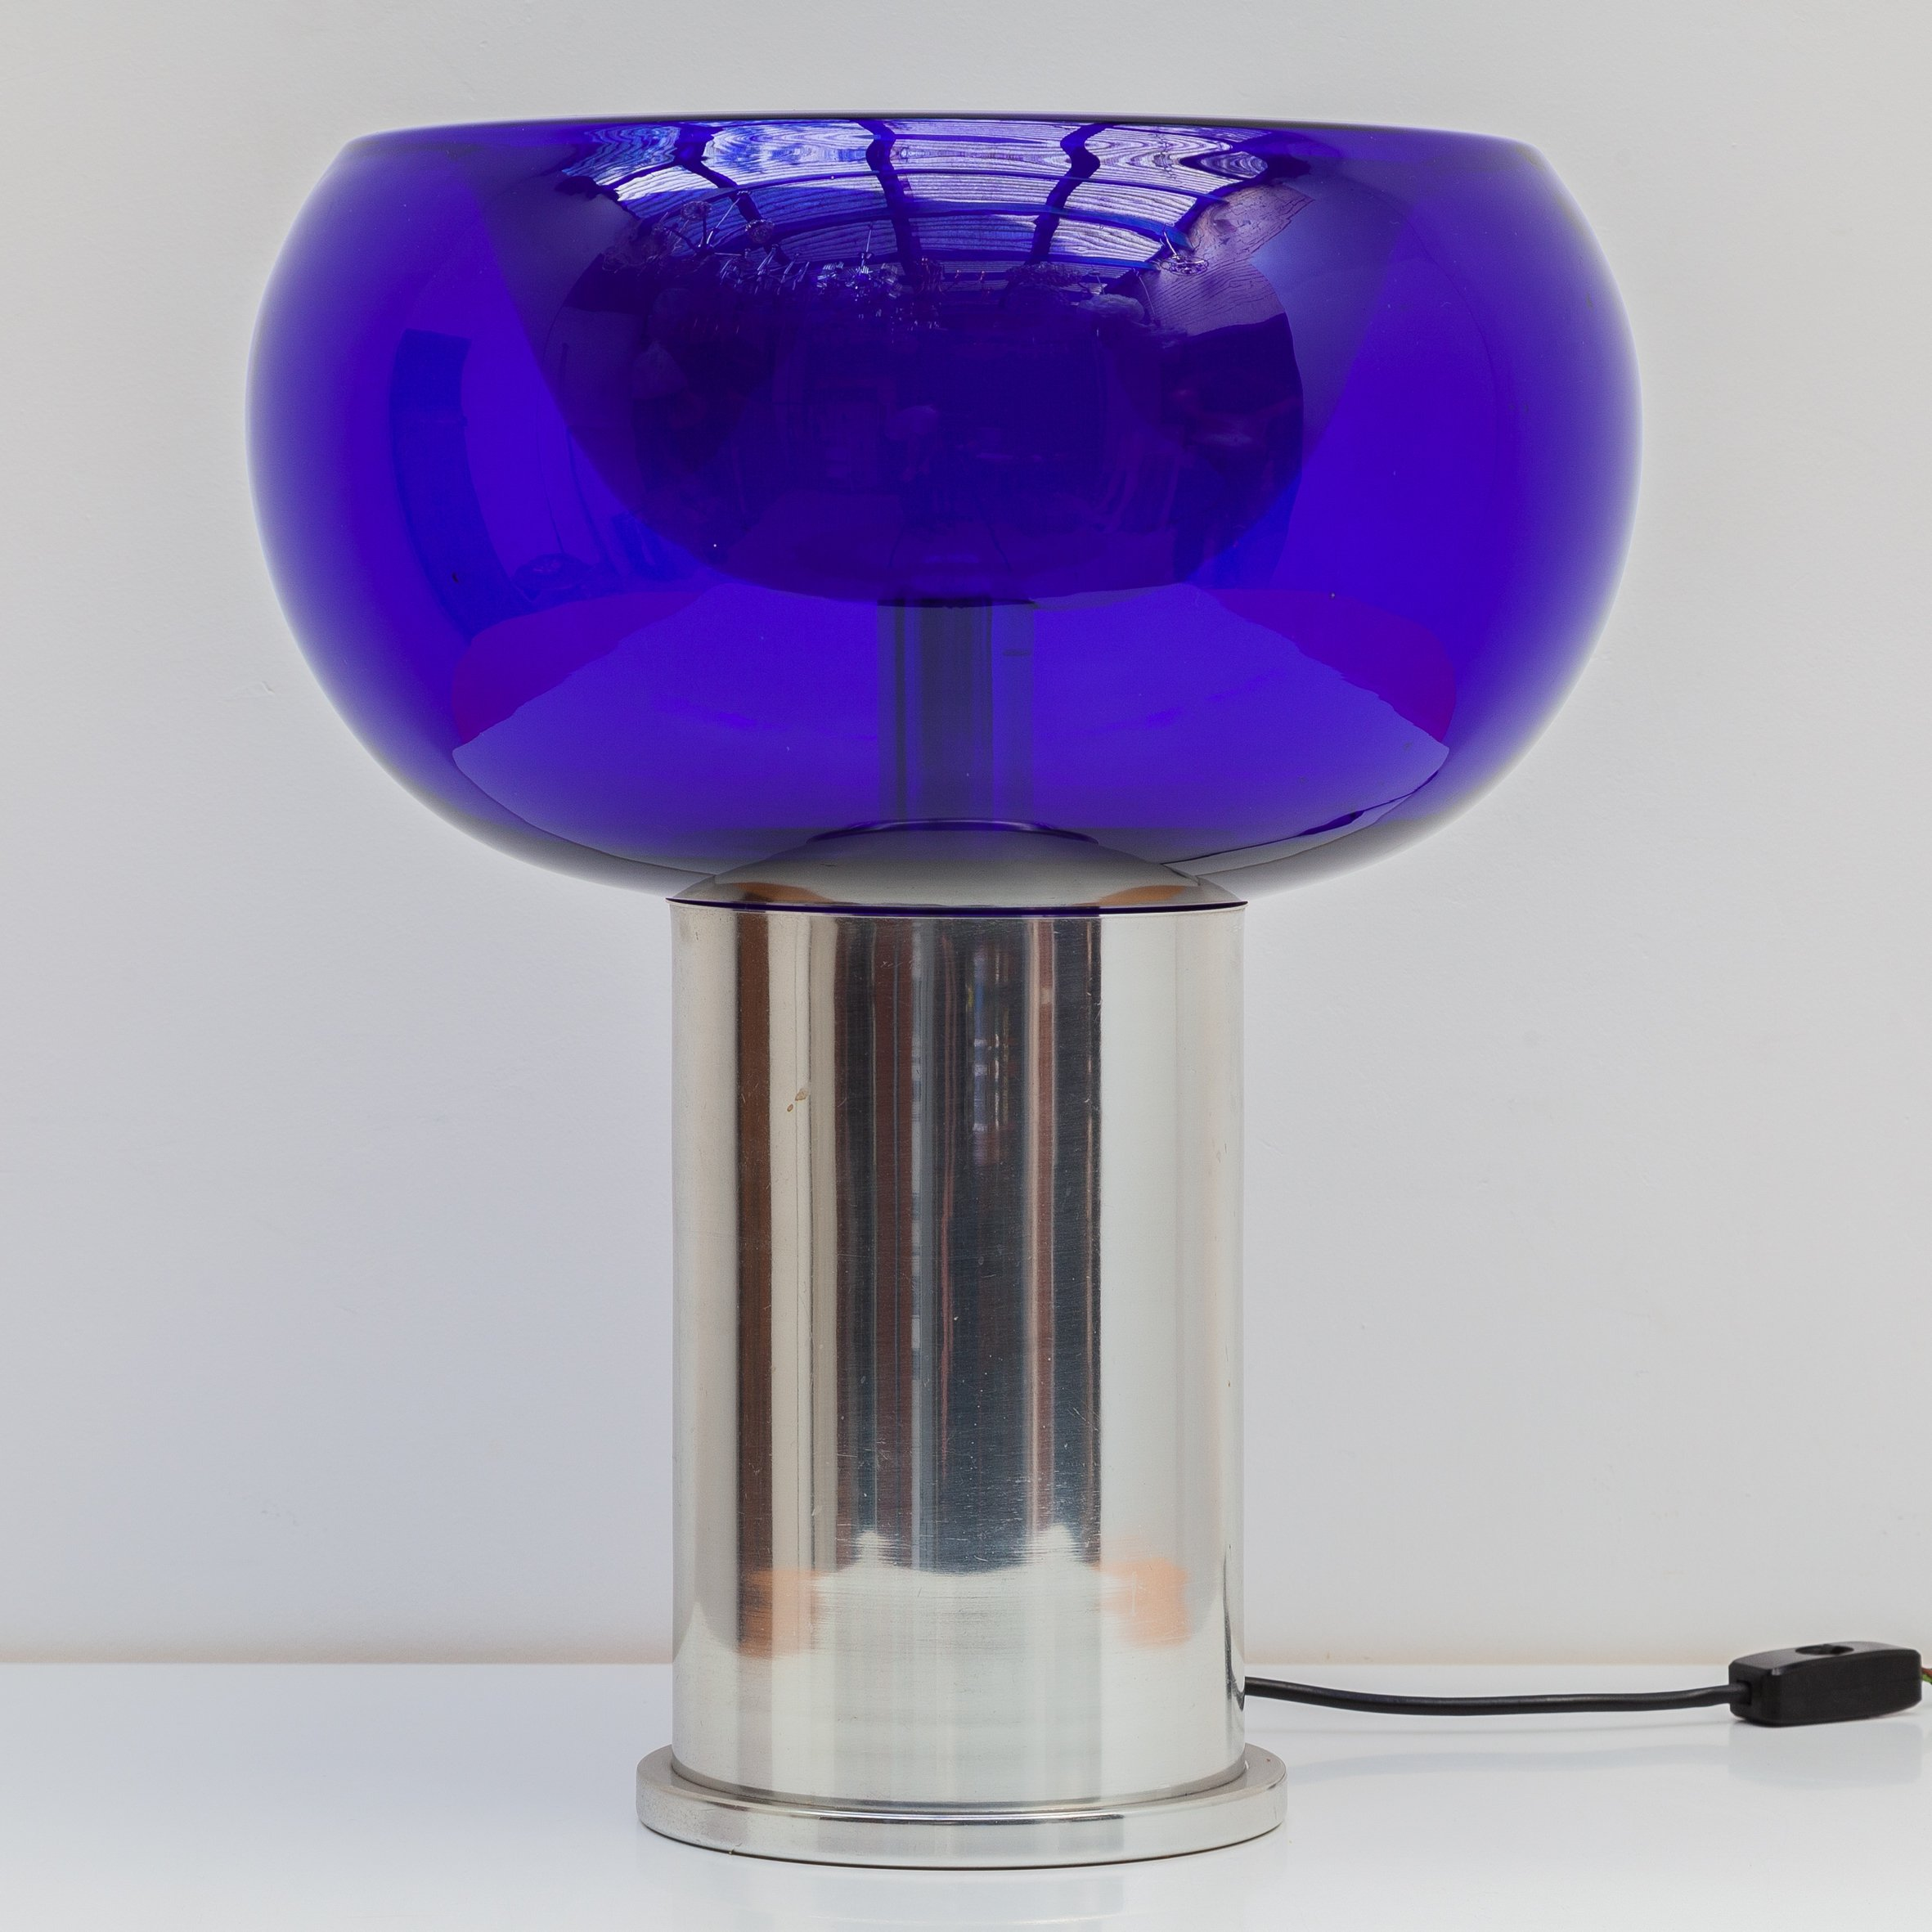 Doria Table Lamp With Cobalt Blue Glass Shade Germany 1970s 120908